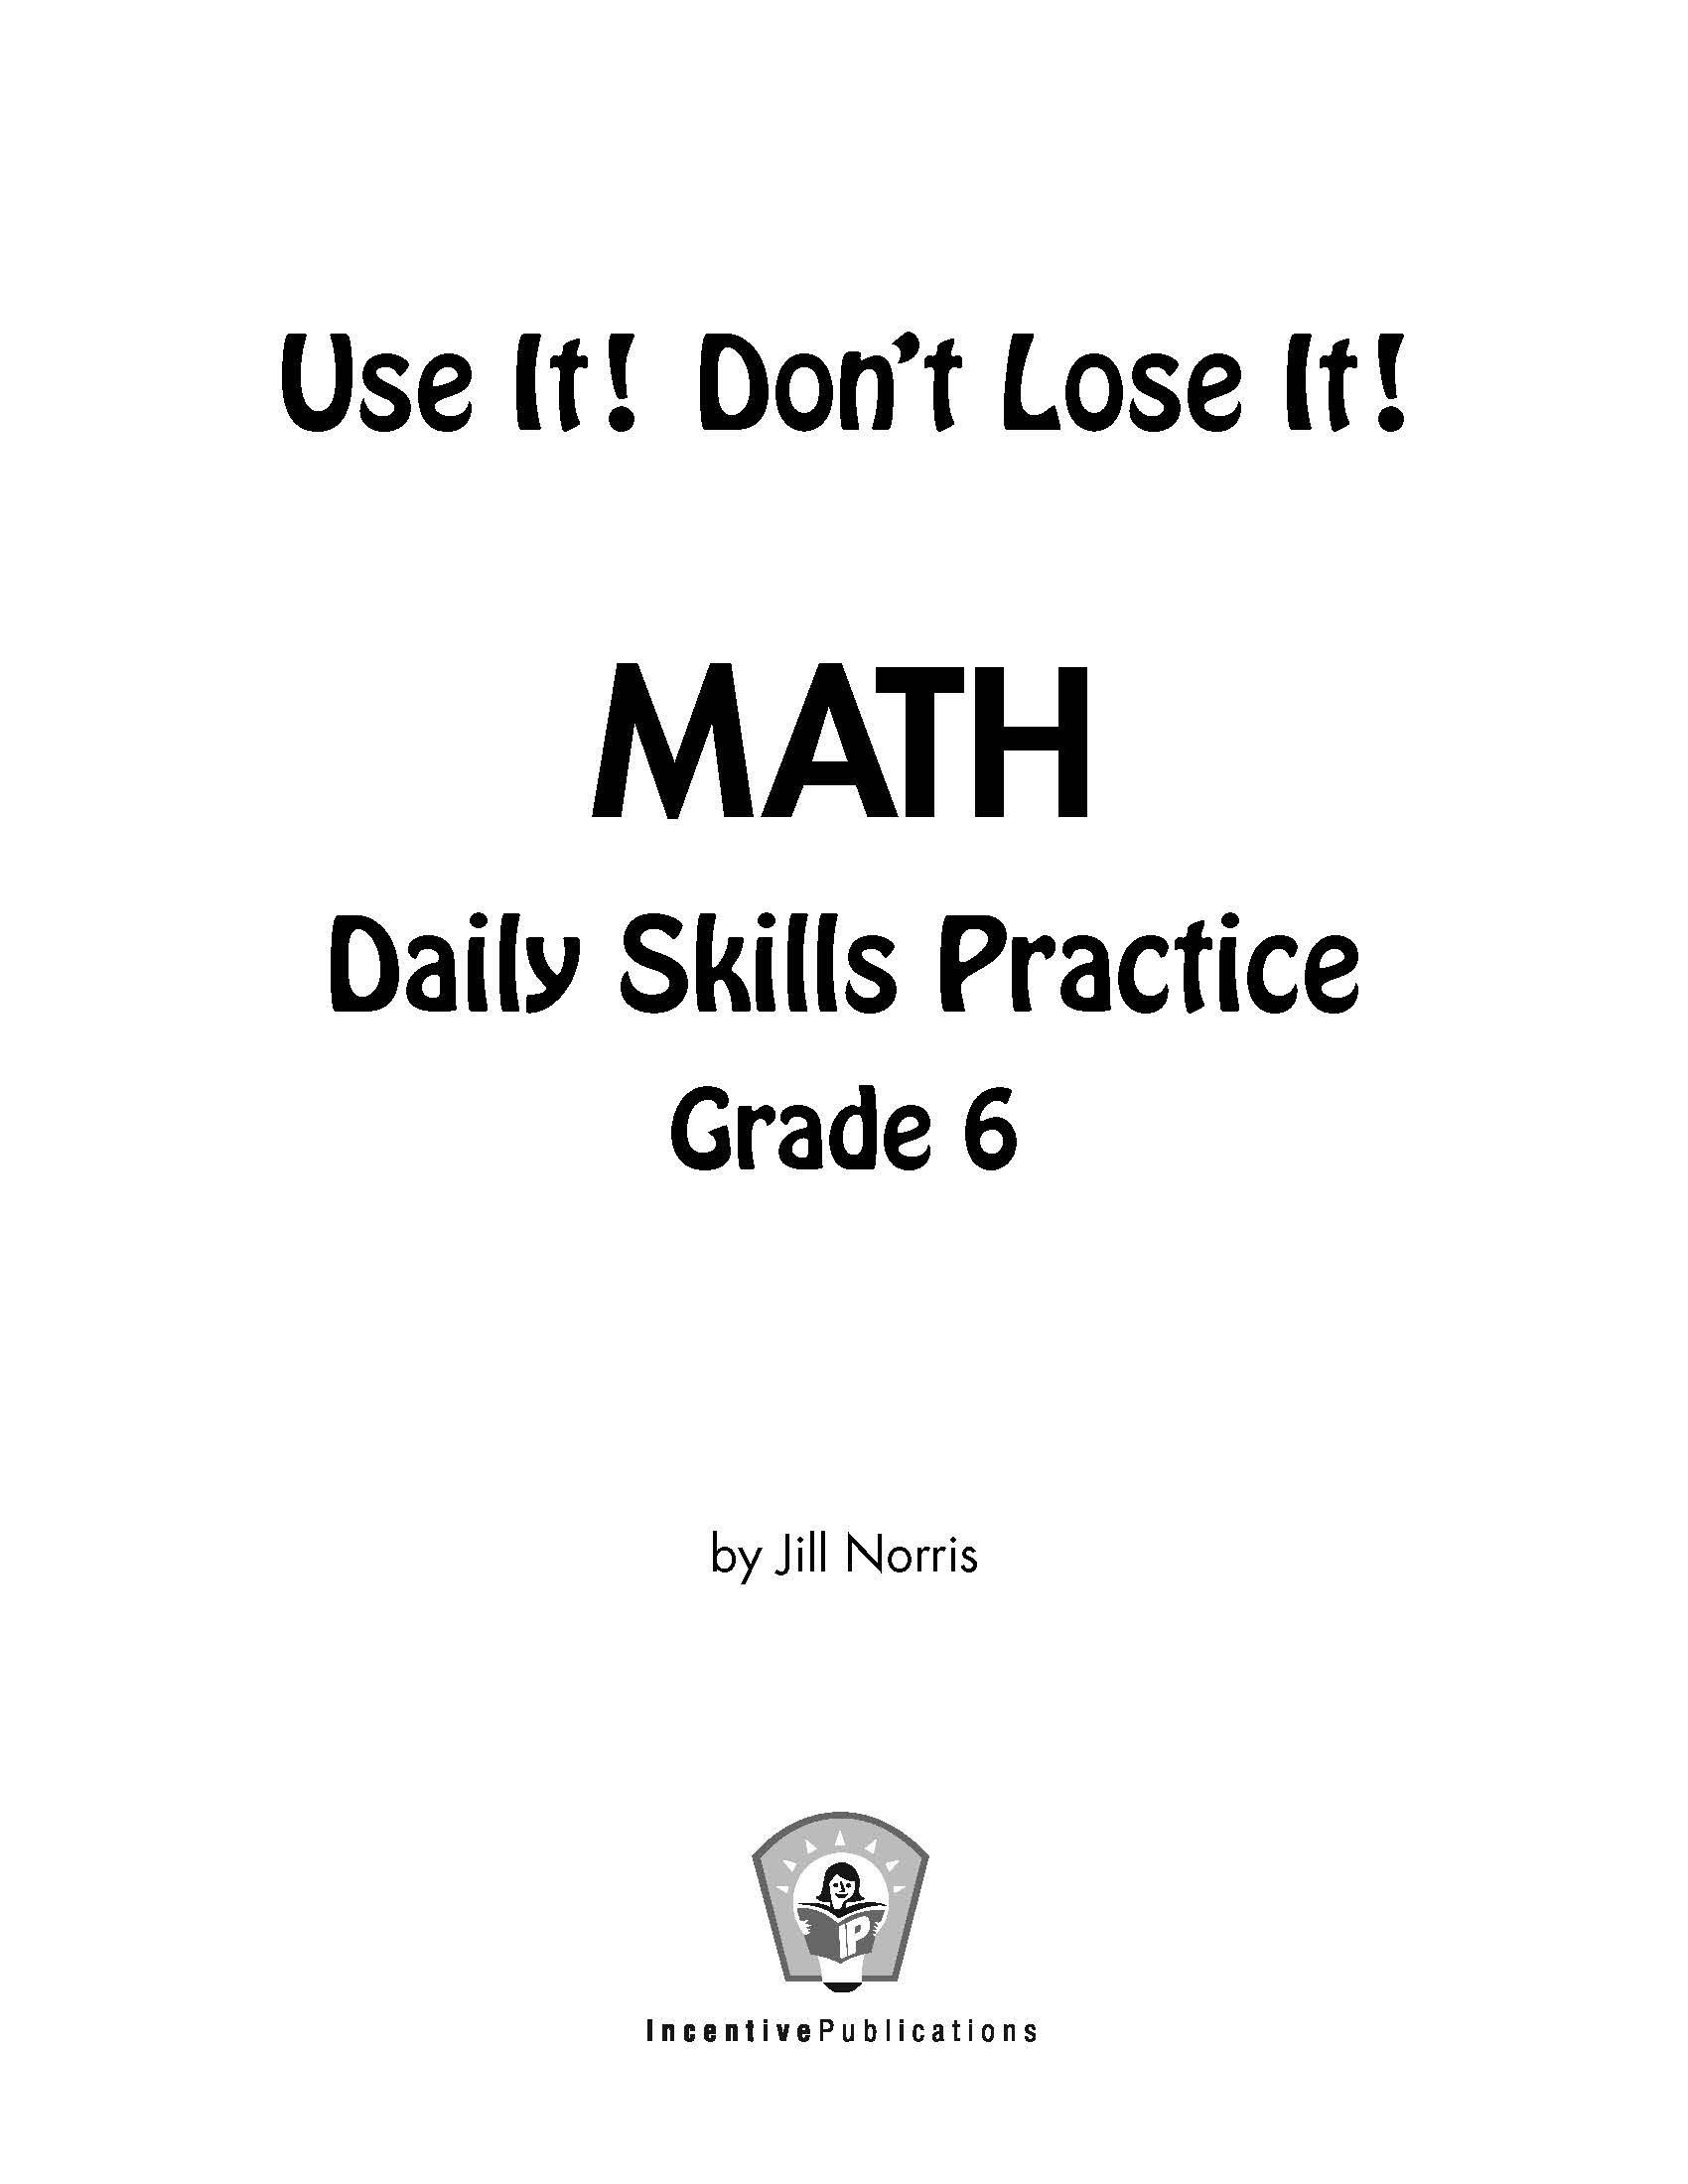 Worksheet Daily Math Practice Worksheets daily math practice grade 6 printable common grade